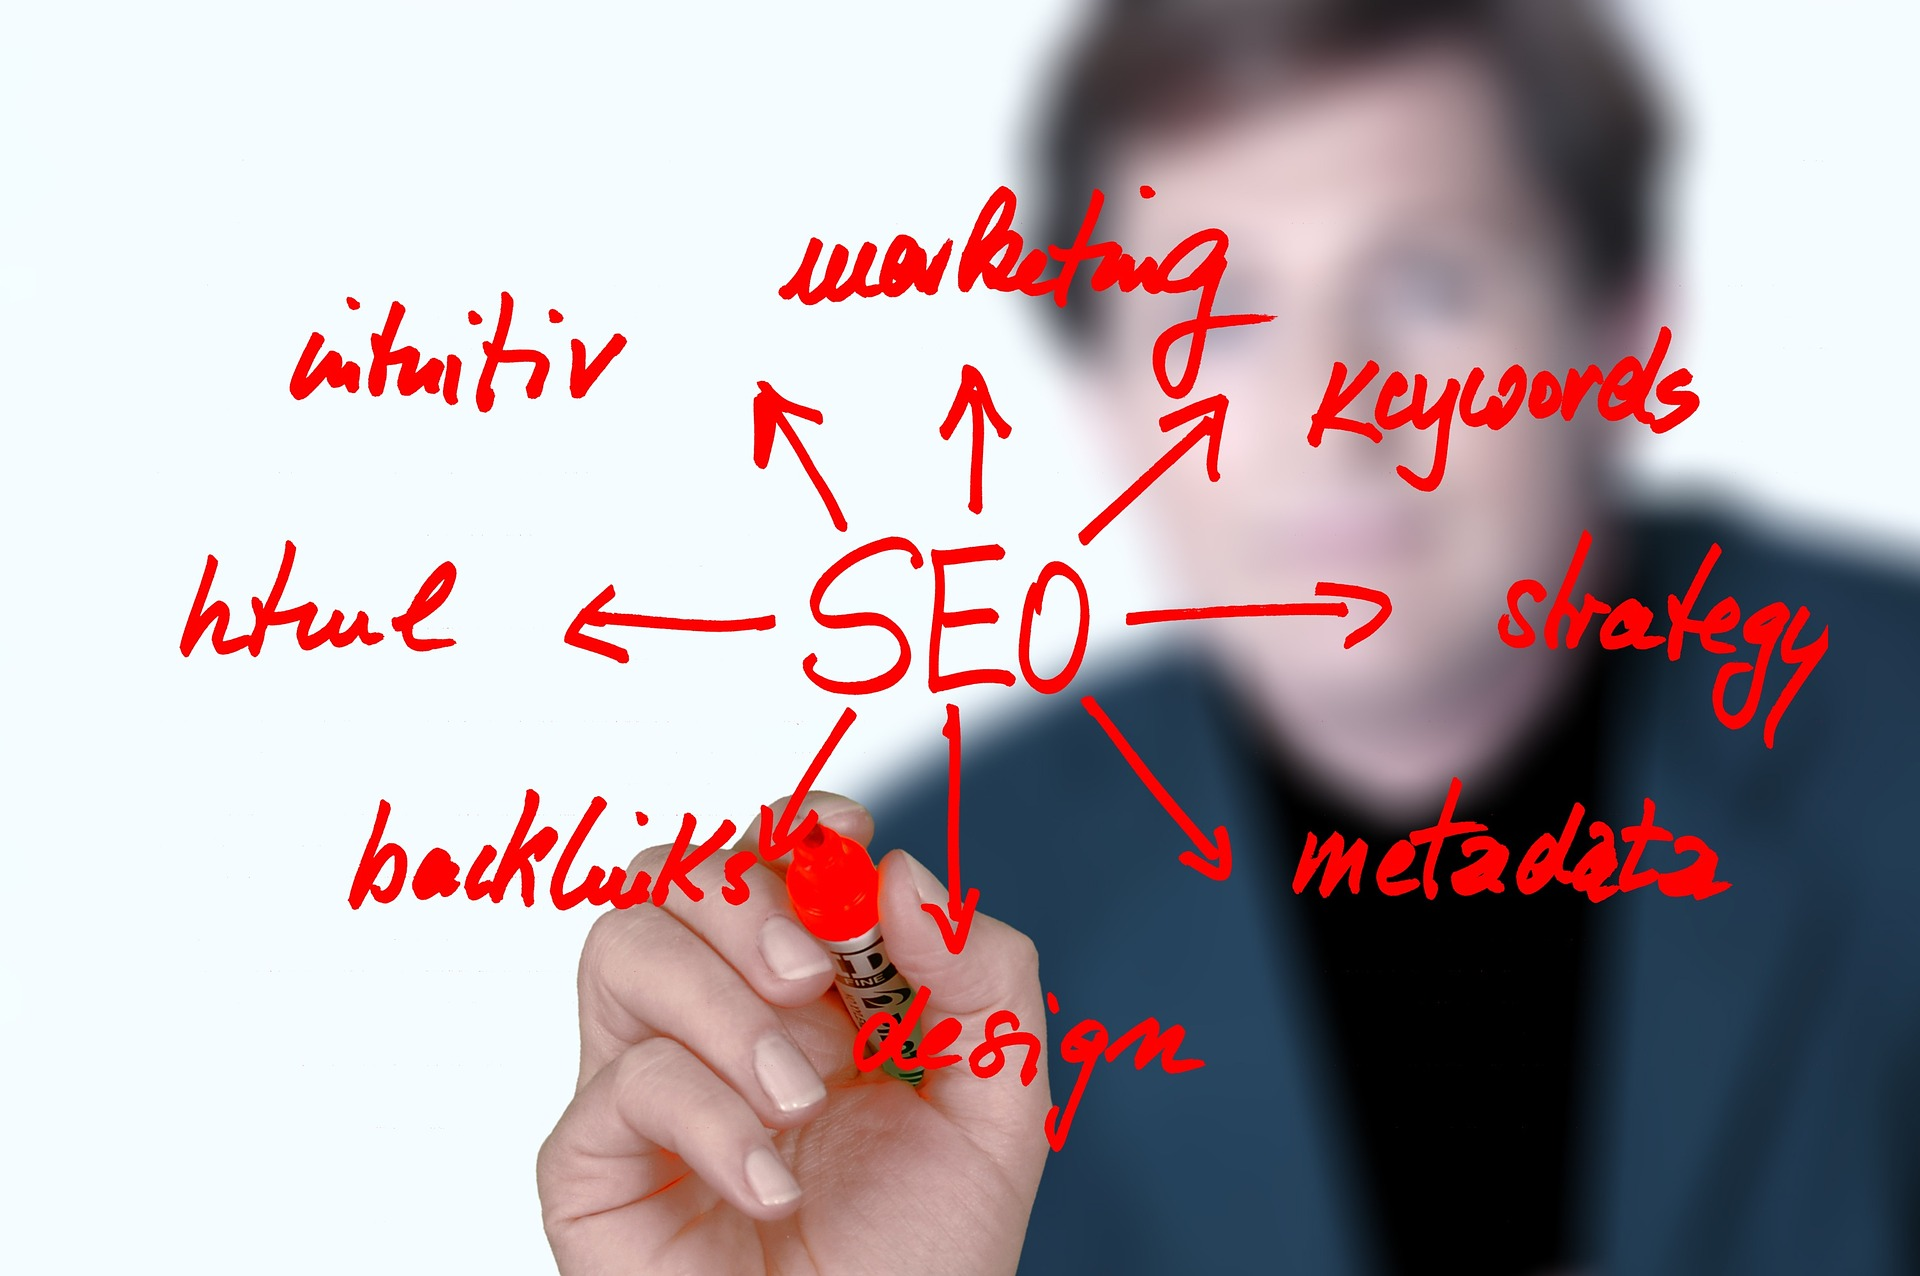 Marketingbüro Blue GmbH SEO search-engine-optimization-1359429_1920